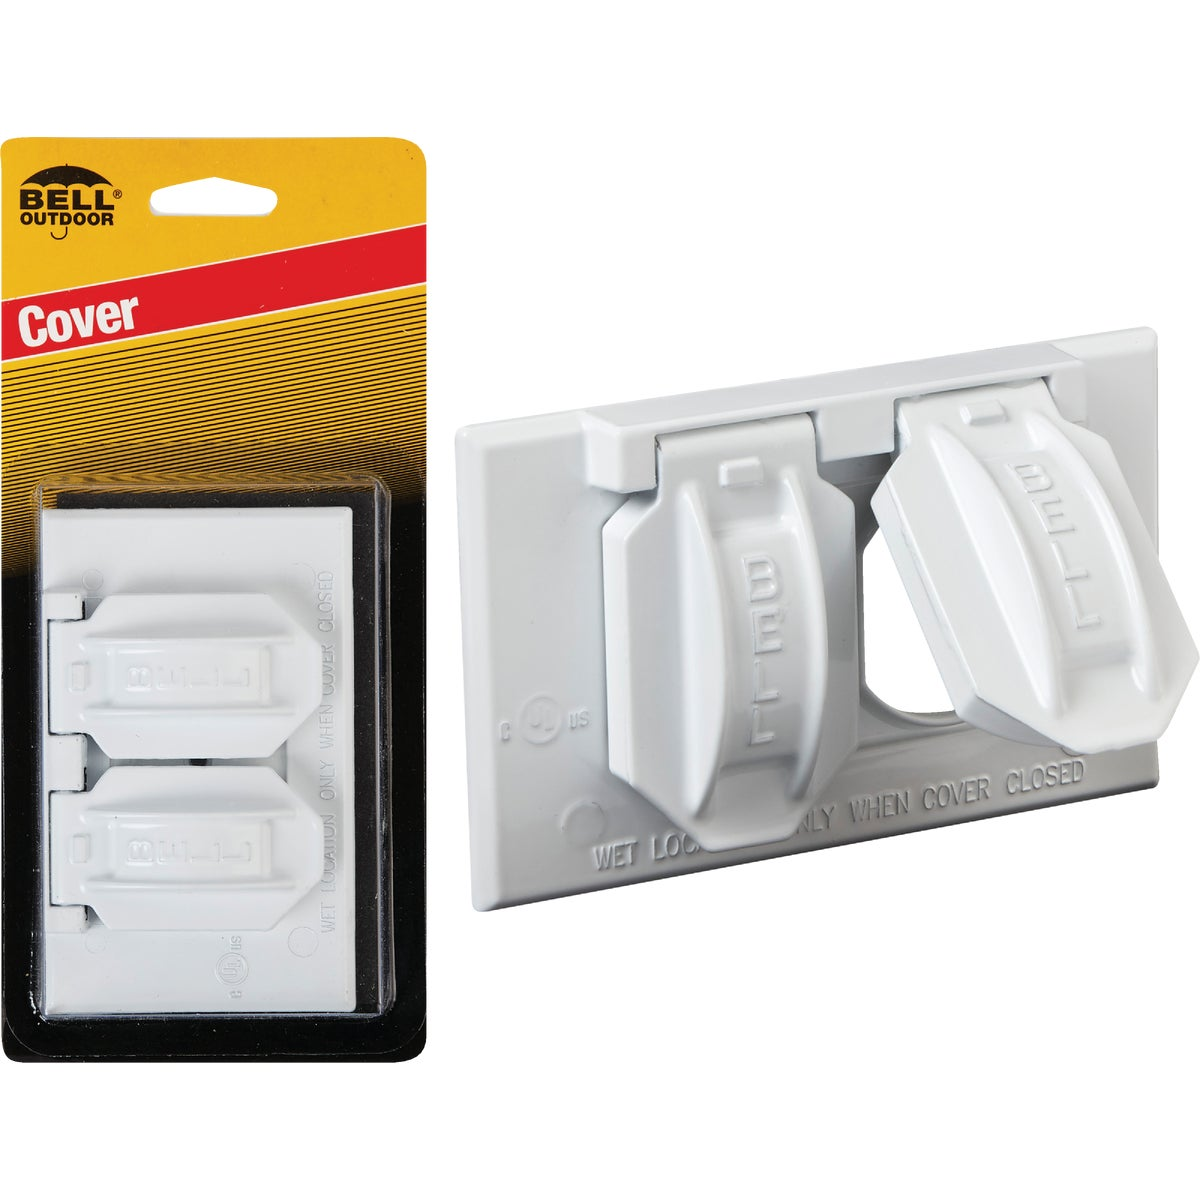 WHT OUTDOOR OUTLET COVER - 5942-4 by Hubbell